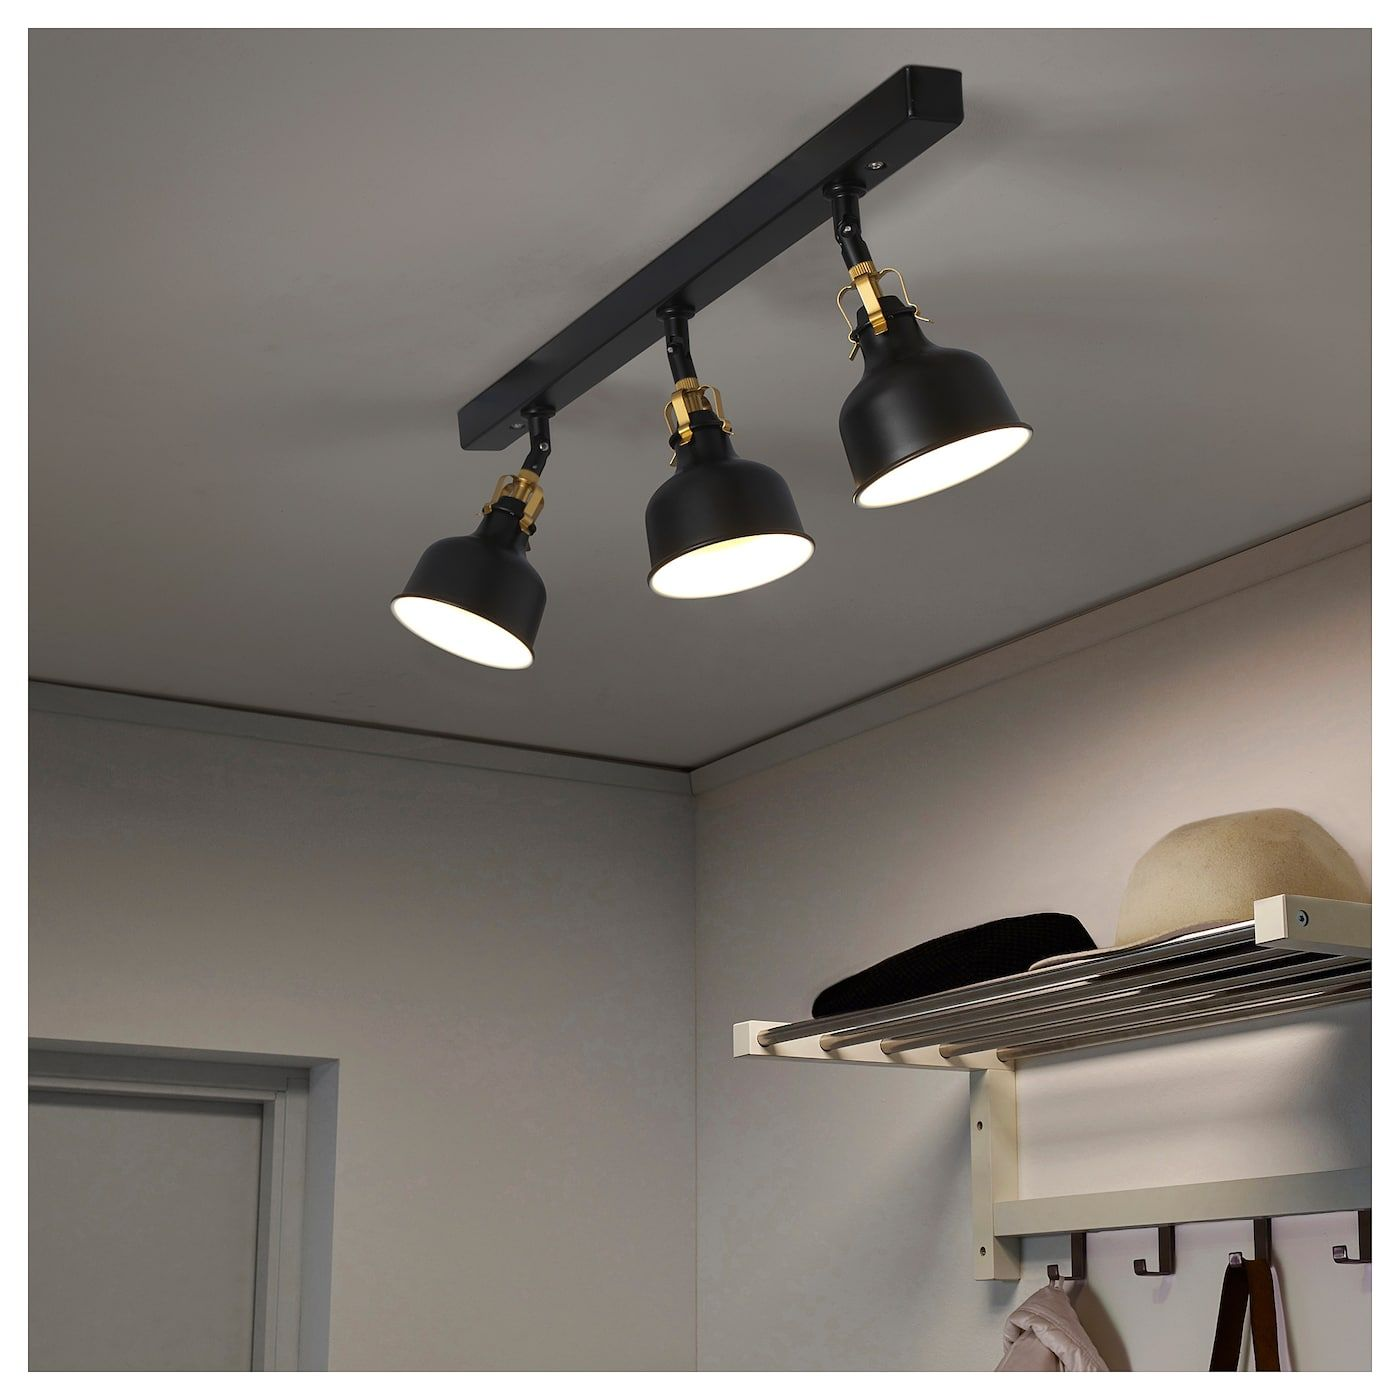 Ranarp Takskena 3 Spots Svart Ikea Black Ceiling Lighting Track Lighting Bedroom Kitchen Ceiling Lights